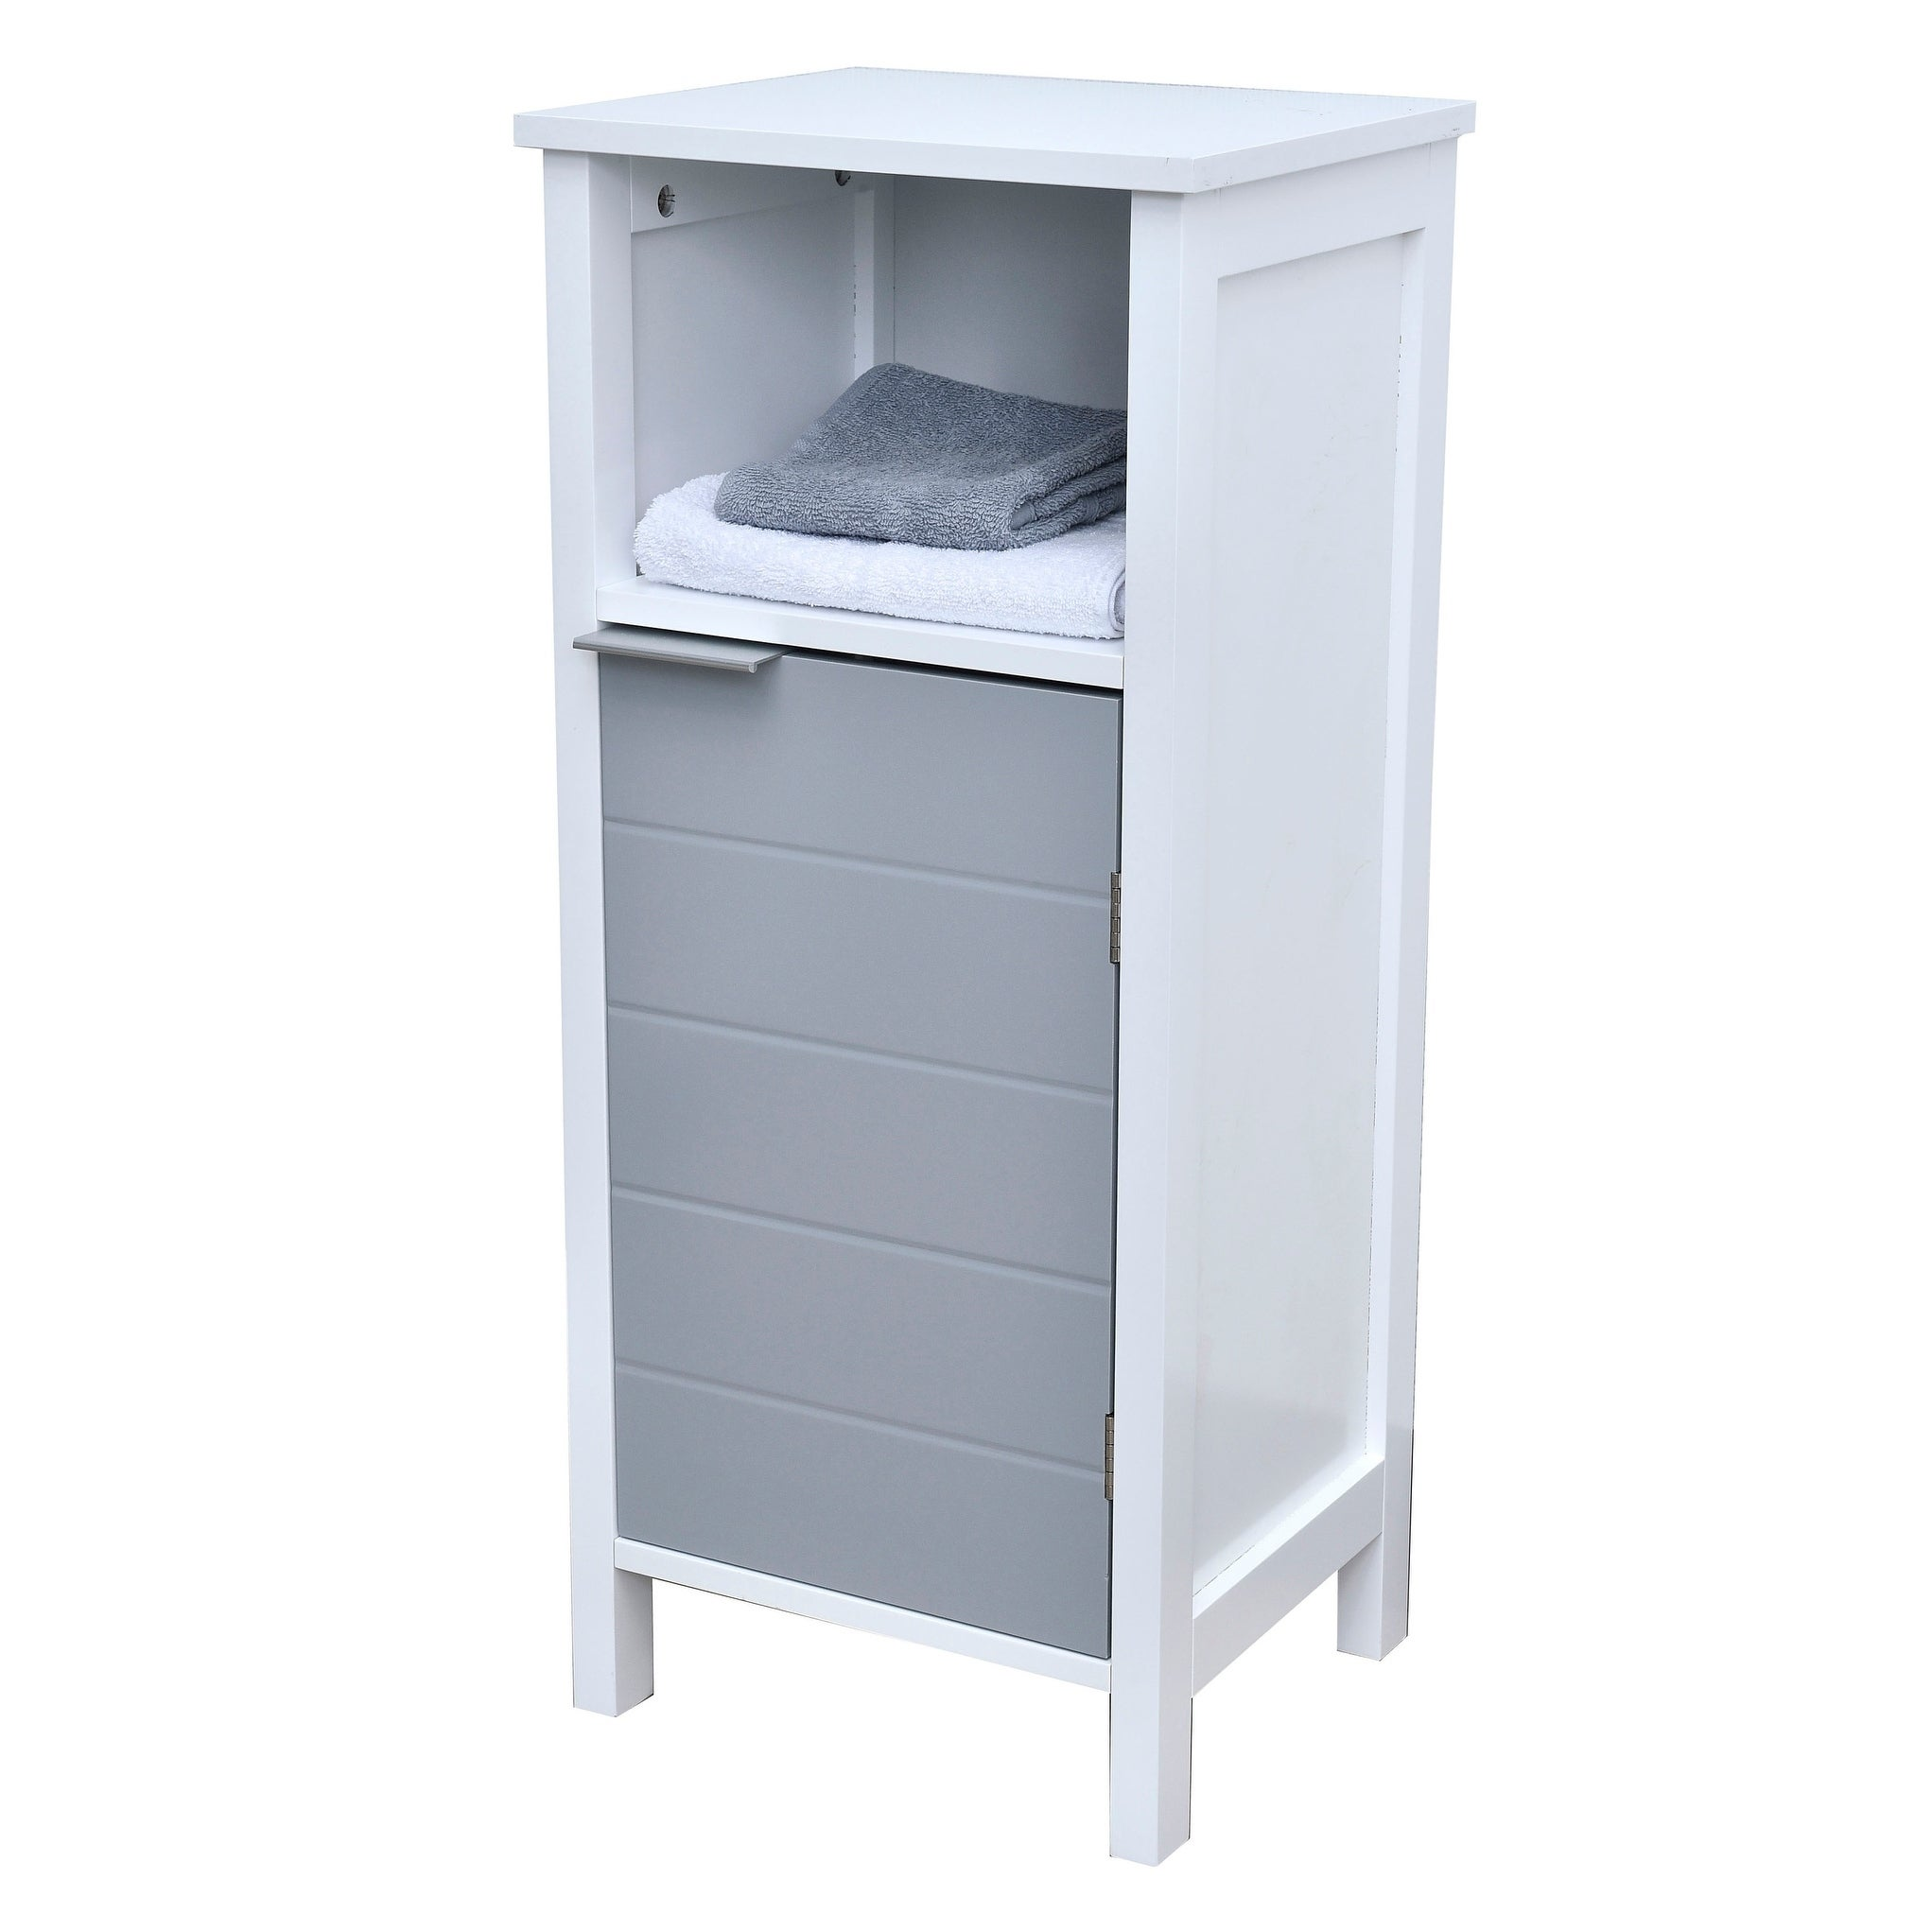 Shop Evideco Freestanding Bathroom Floor Storage Cabinet 1 Door with ...